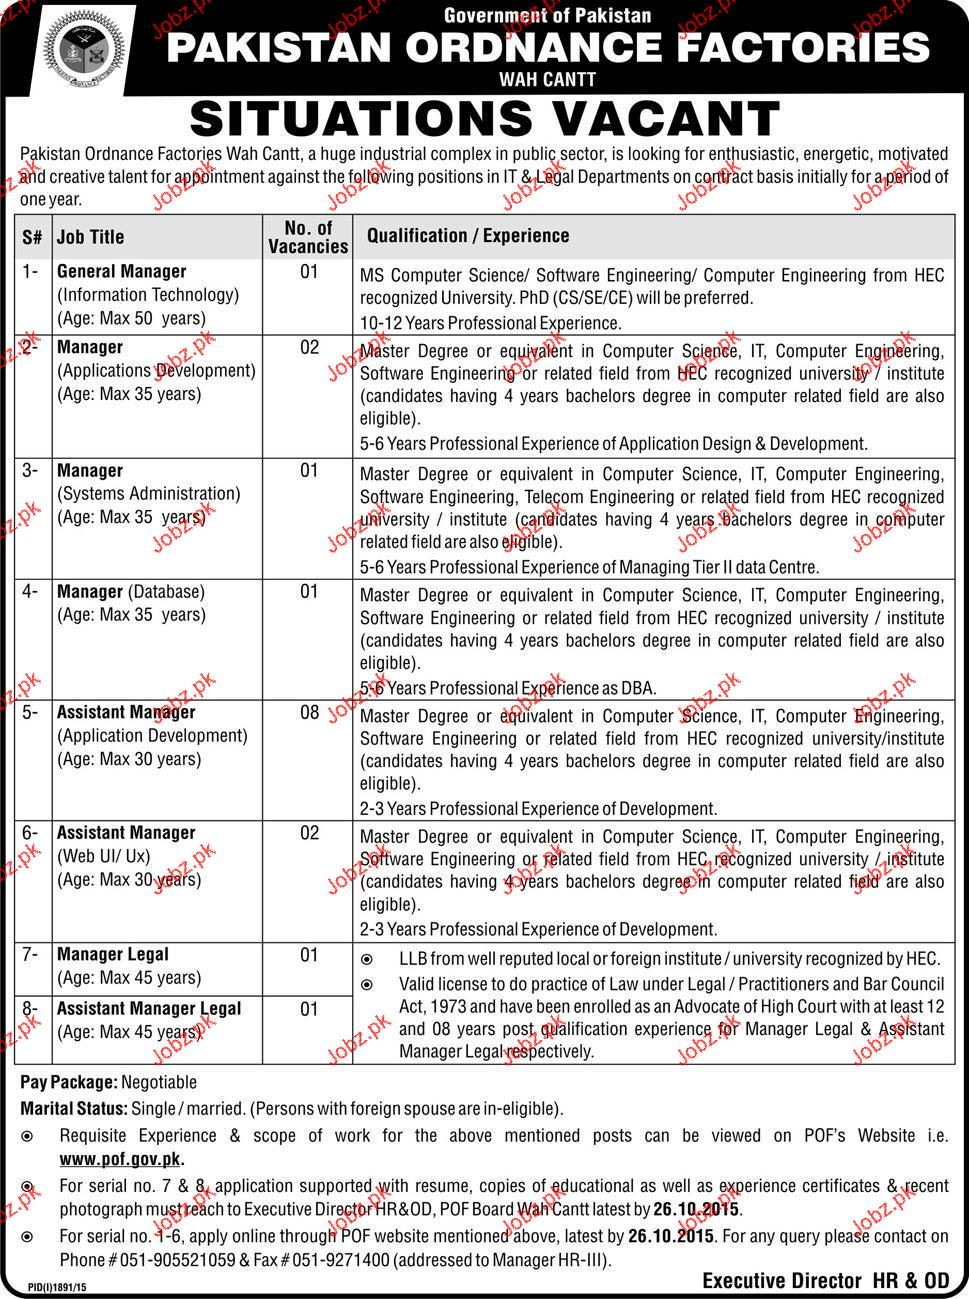 General Manager, Manager System Administration Job in OPF